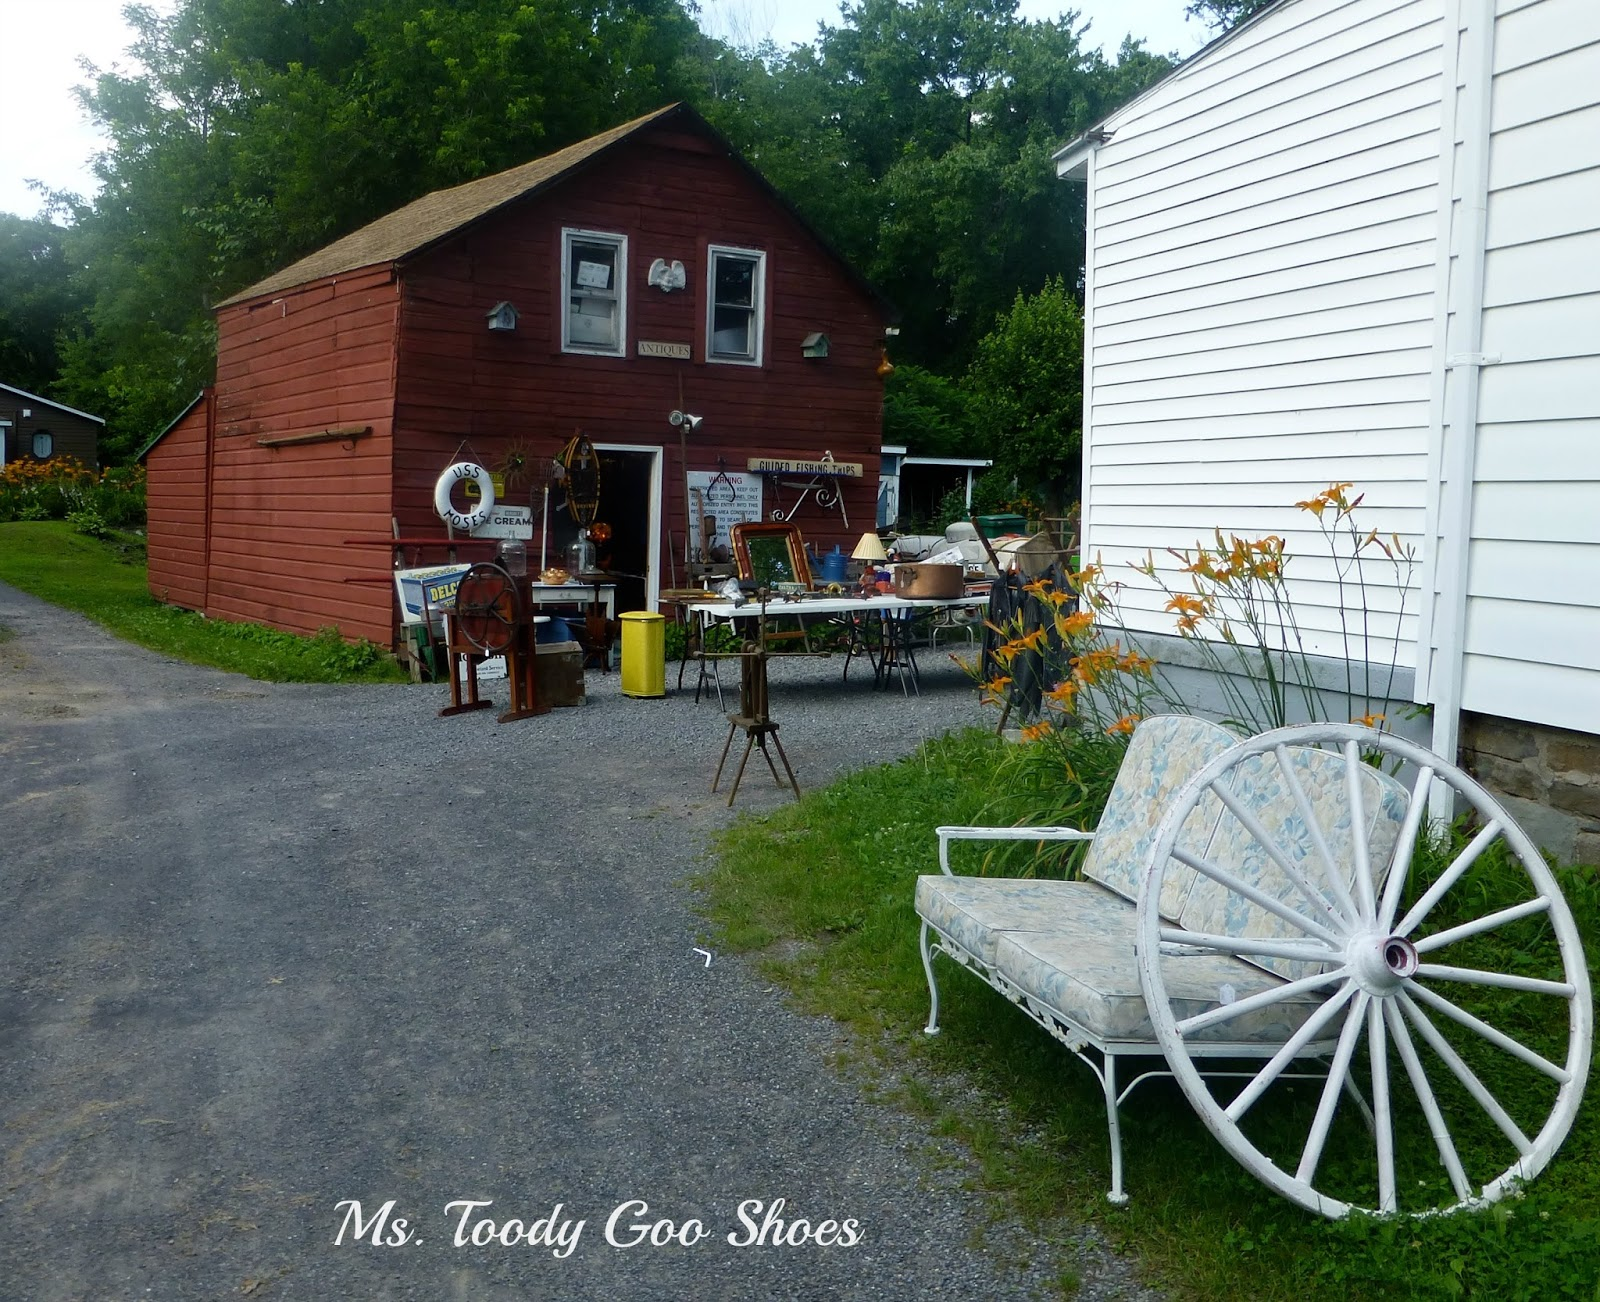 Woodstock, NY Catskill Mountains by Ms. Toody Goo Shoes